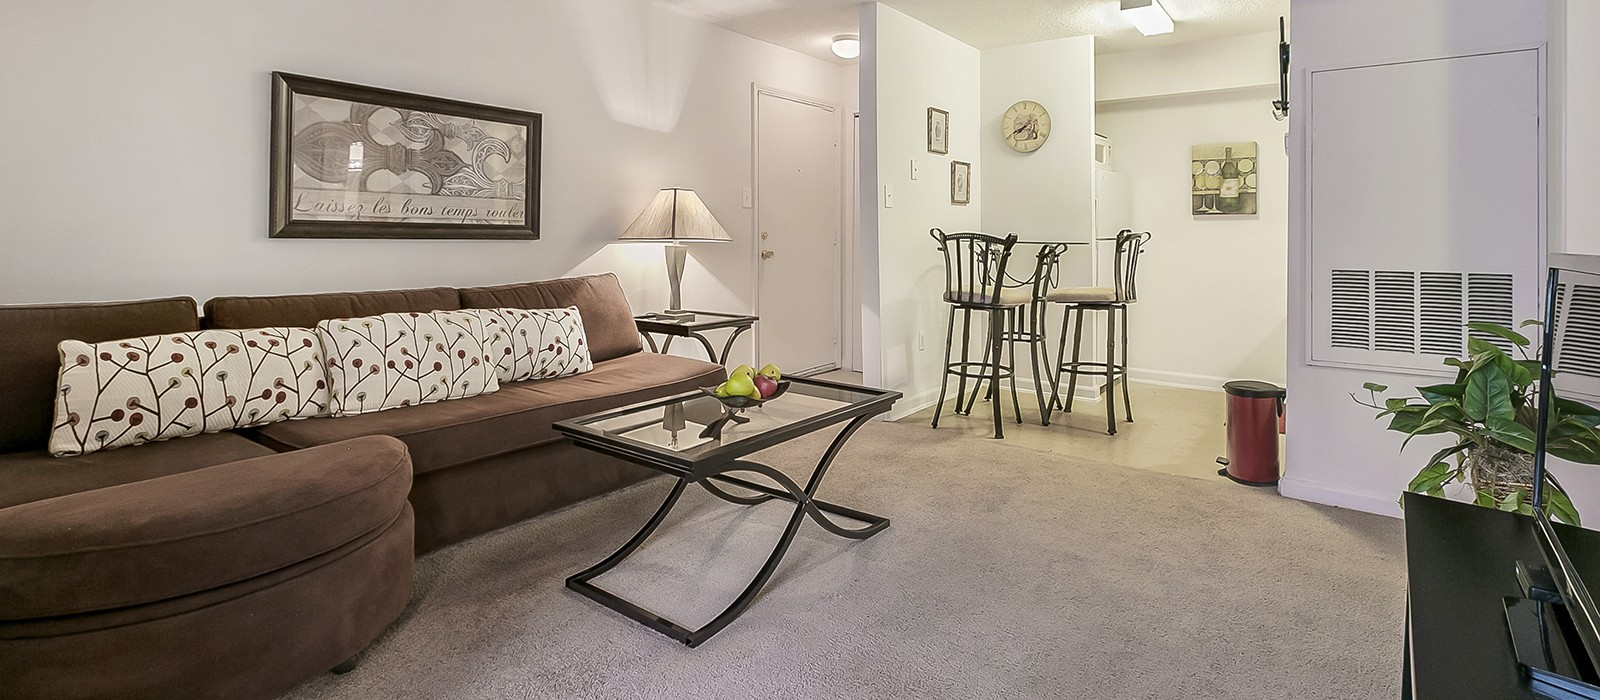 . Premises Apartments in Metairie LA   1   2 Bedroom Apartments For